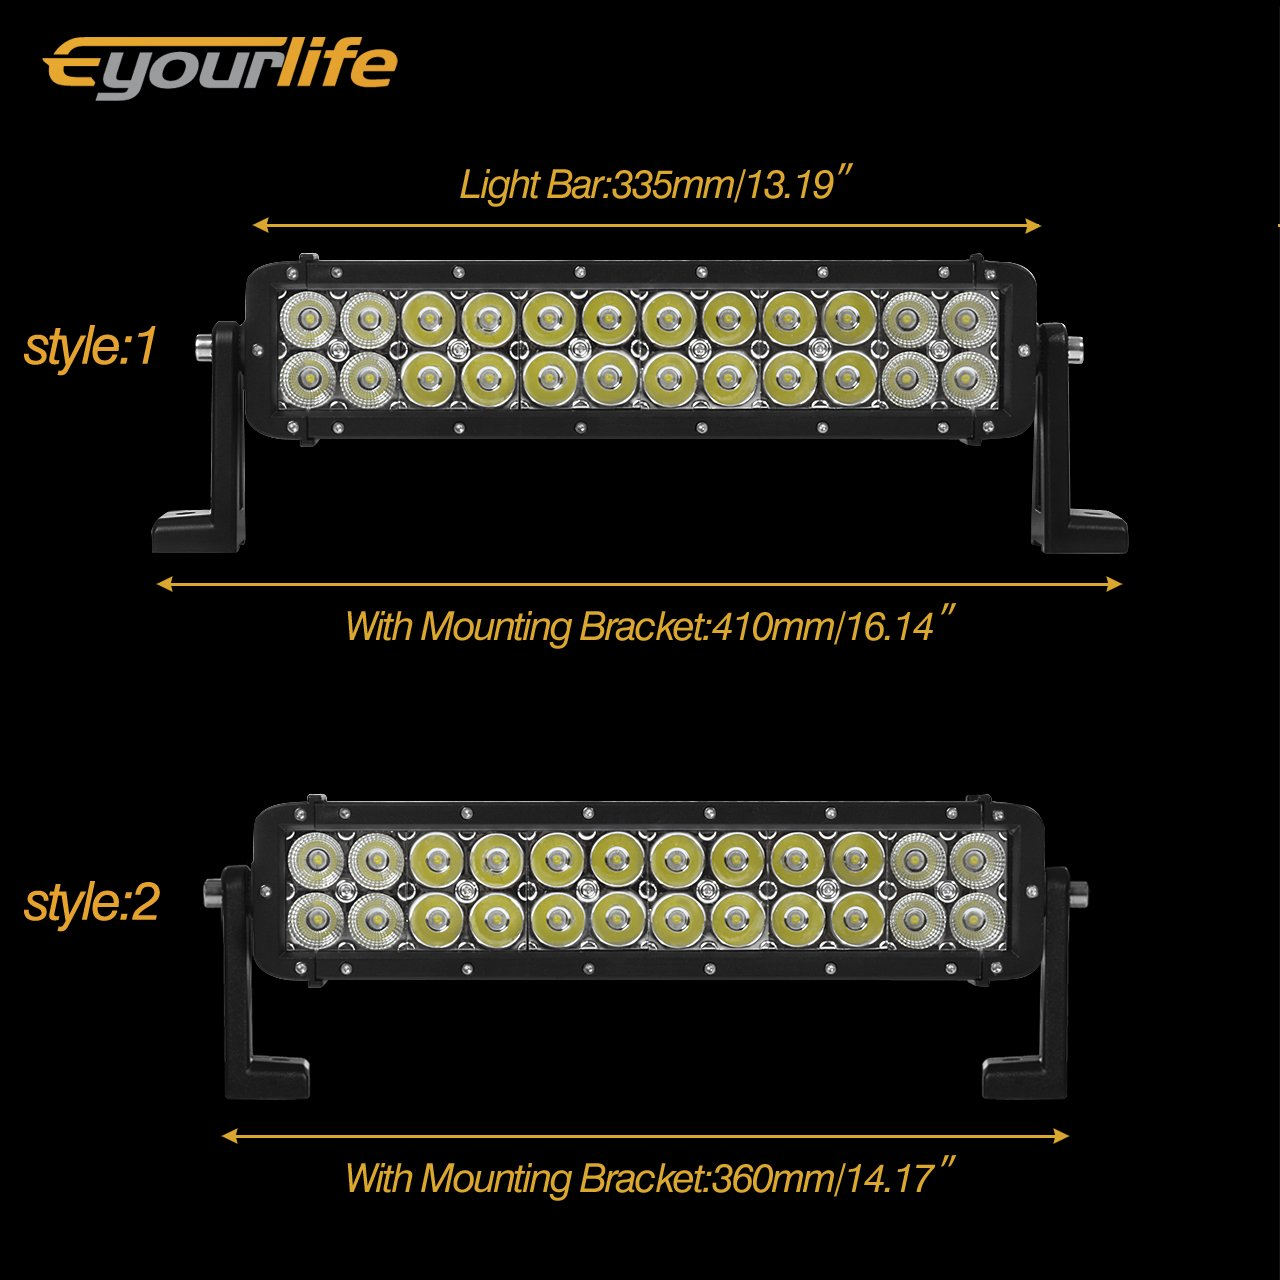 Eyourlife 14 Inch Led Light Bar72w 4300lm Spot Flood 52quot 300w Cree 100led Driving Bar Work Fog Lightswiring Harness Combo Beam Truck Off Road For 4x4 Atv Suv Jeep Pickup Boatblack